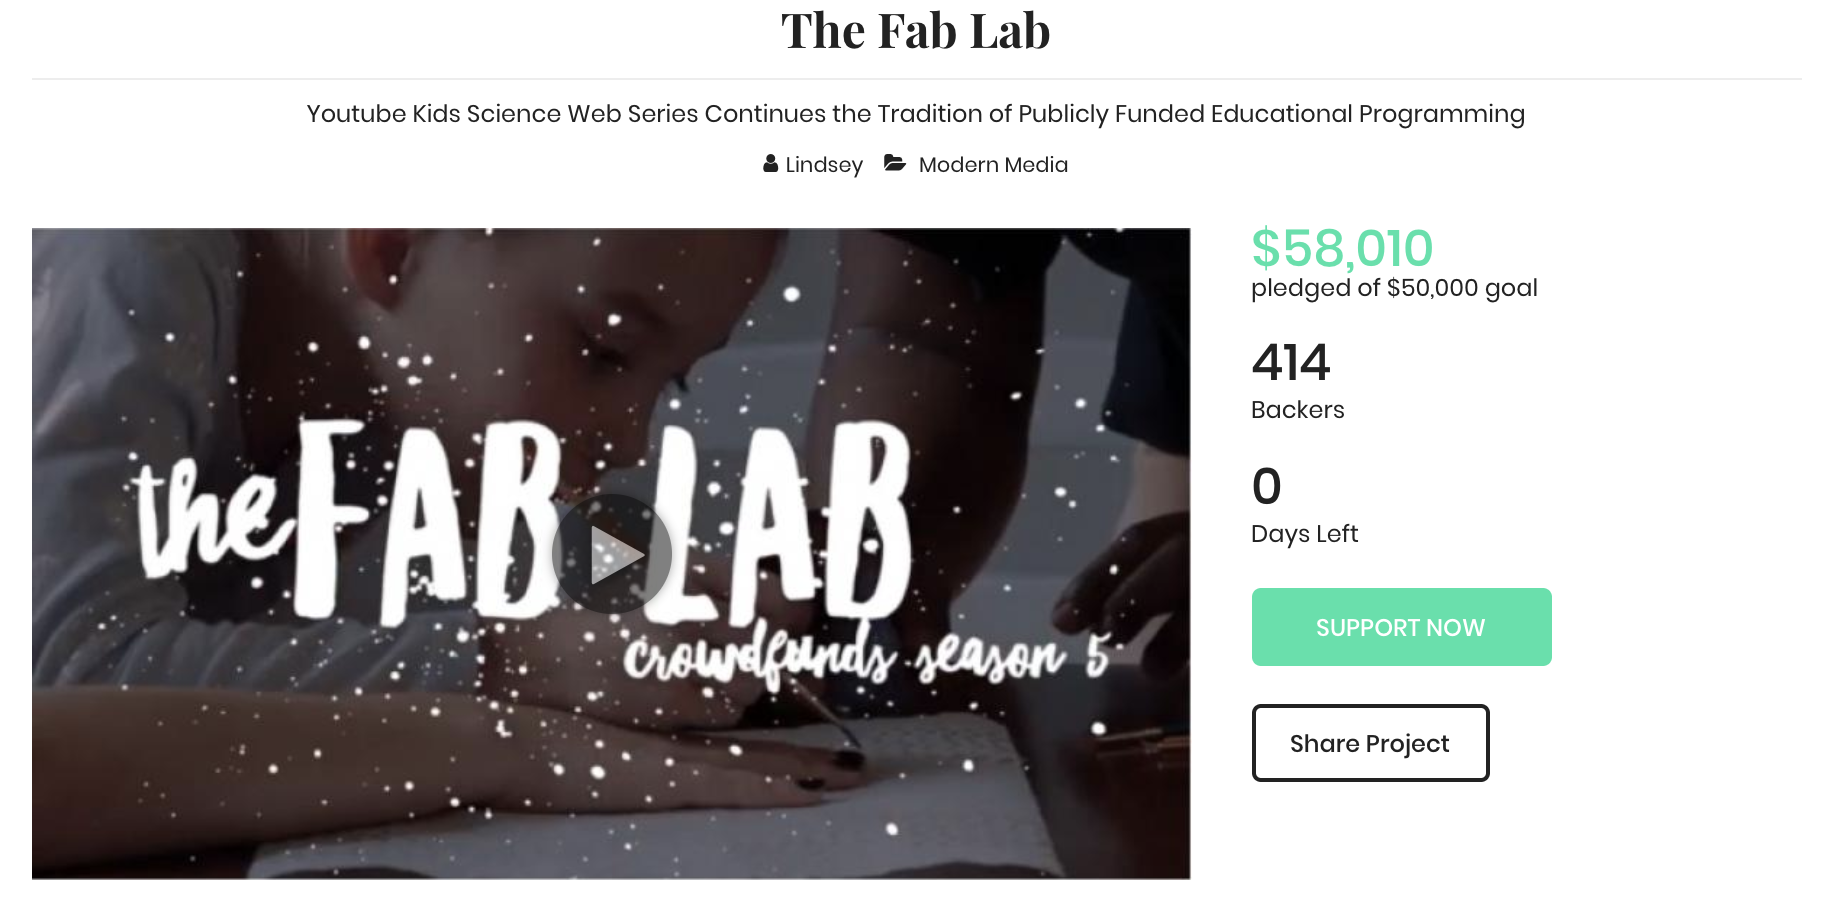 Portland-based YouTuber, Lindsey Murphy, is the creator of  The Fab Lab  - a digital series for kids interested in STEAM that takes the magic of everyday life and connects it to the scientific process.